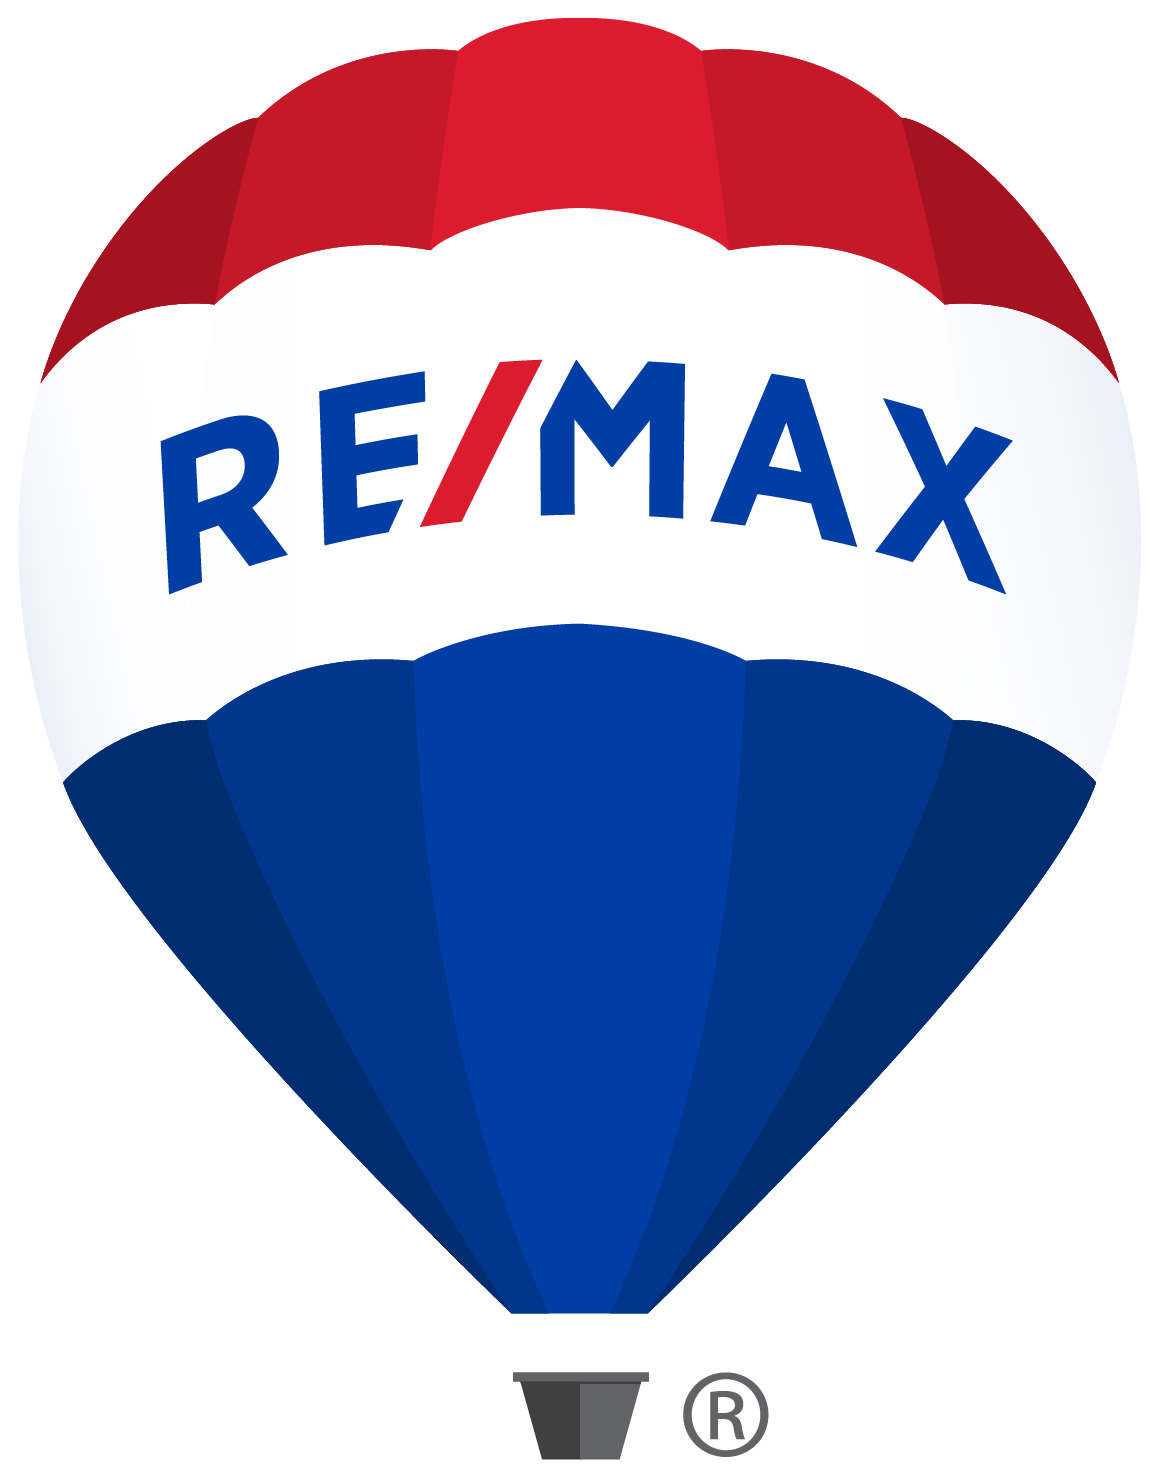 2remax-balloon-web-transparent.png